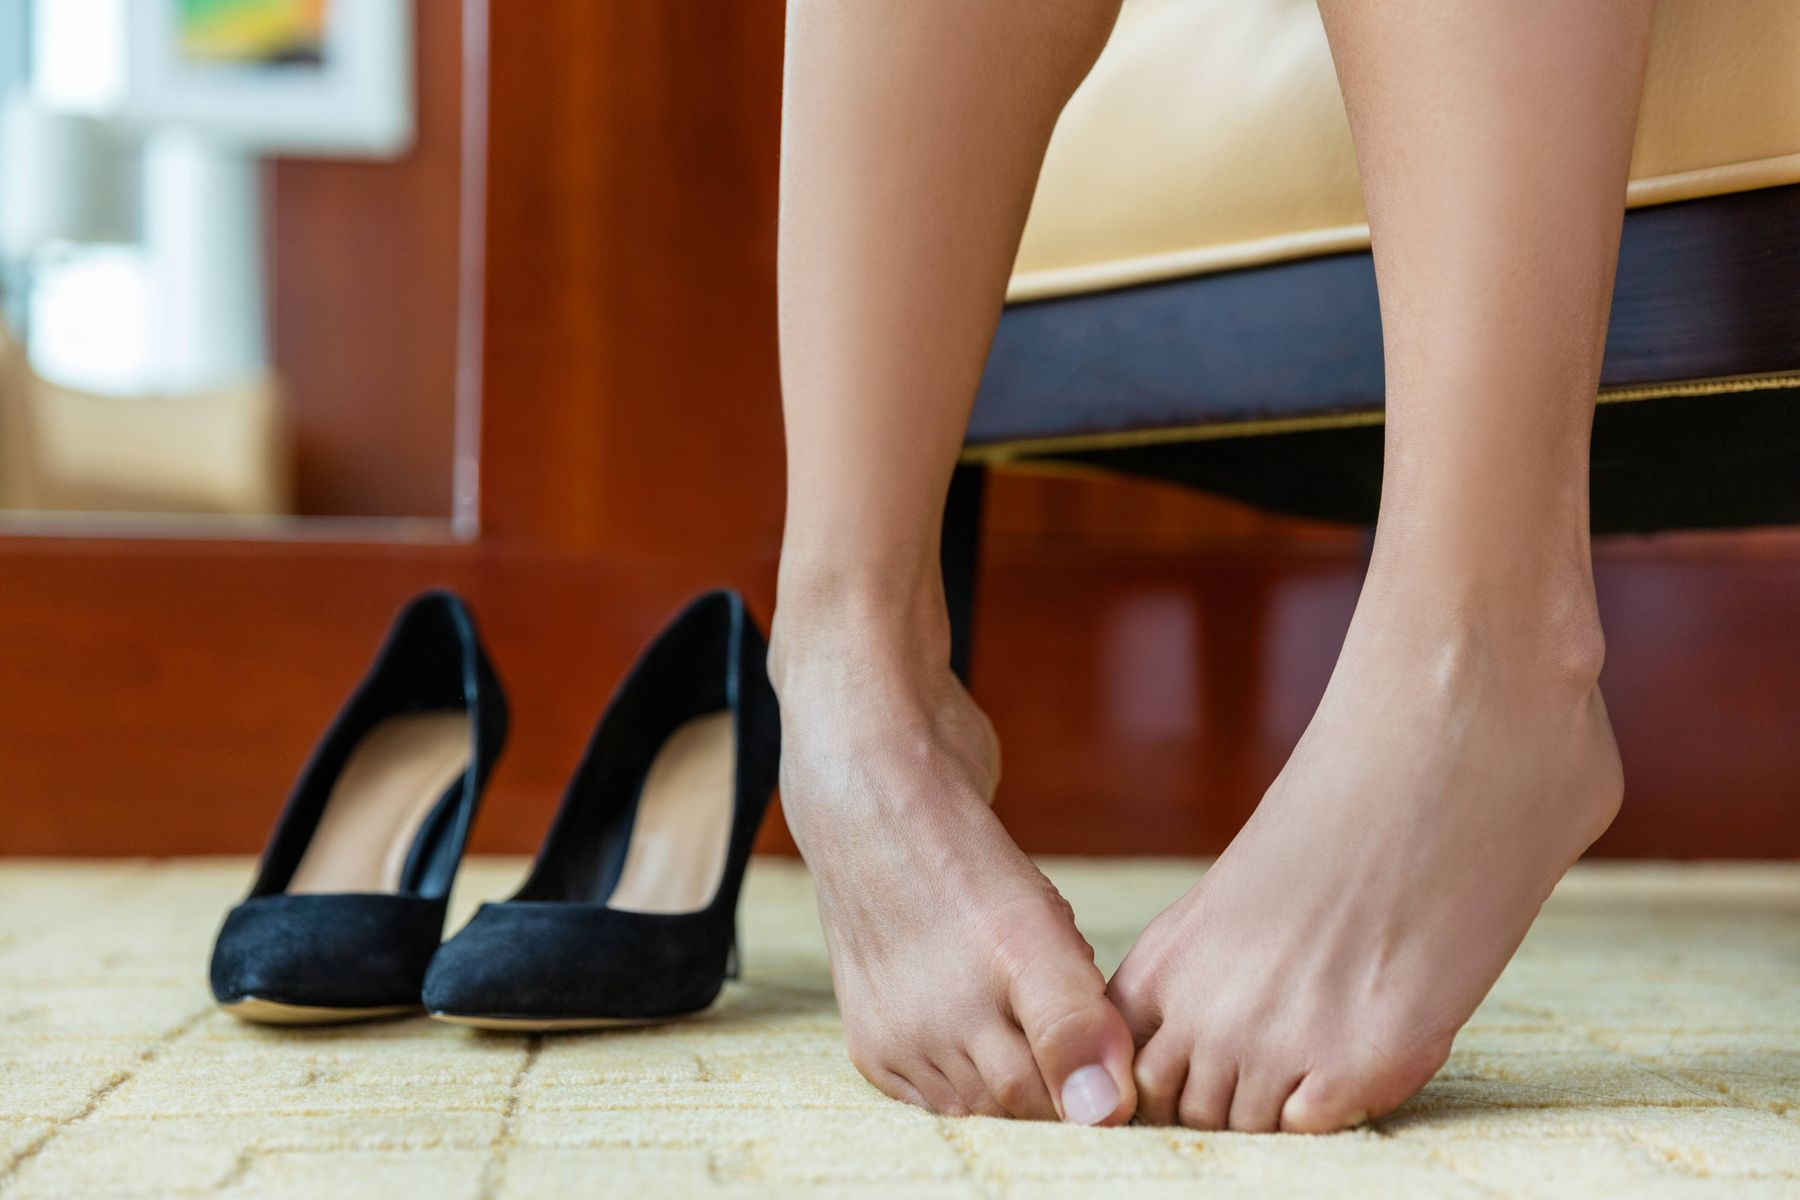 Simple Ways to Get Rid of Smelly Feet